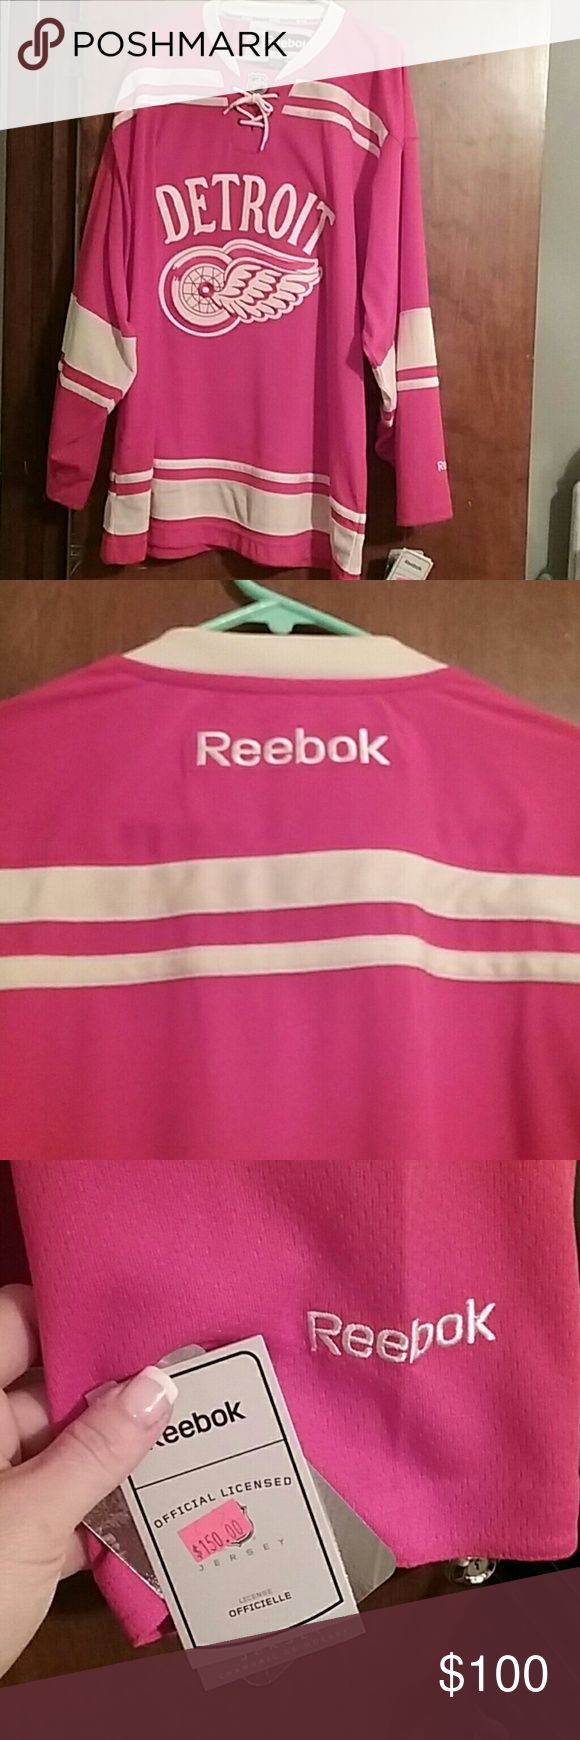 Offical NHL RED WING hockey jersey Excellent condition with tags Reebok Tops